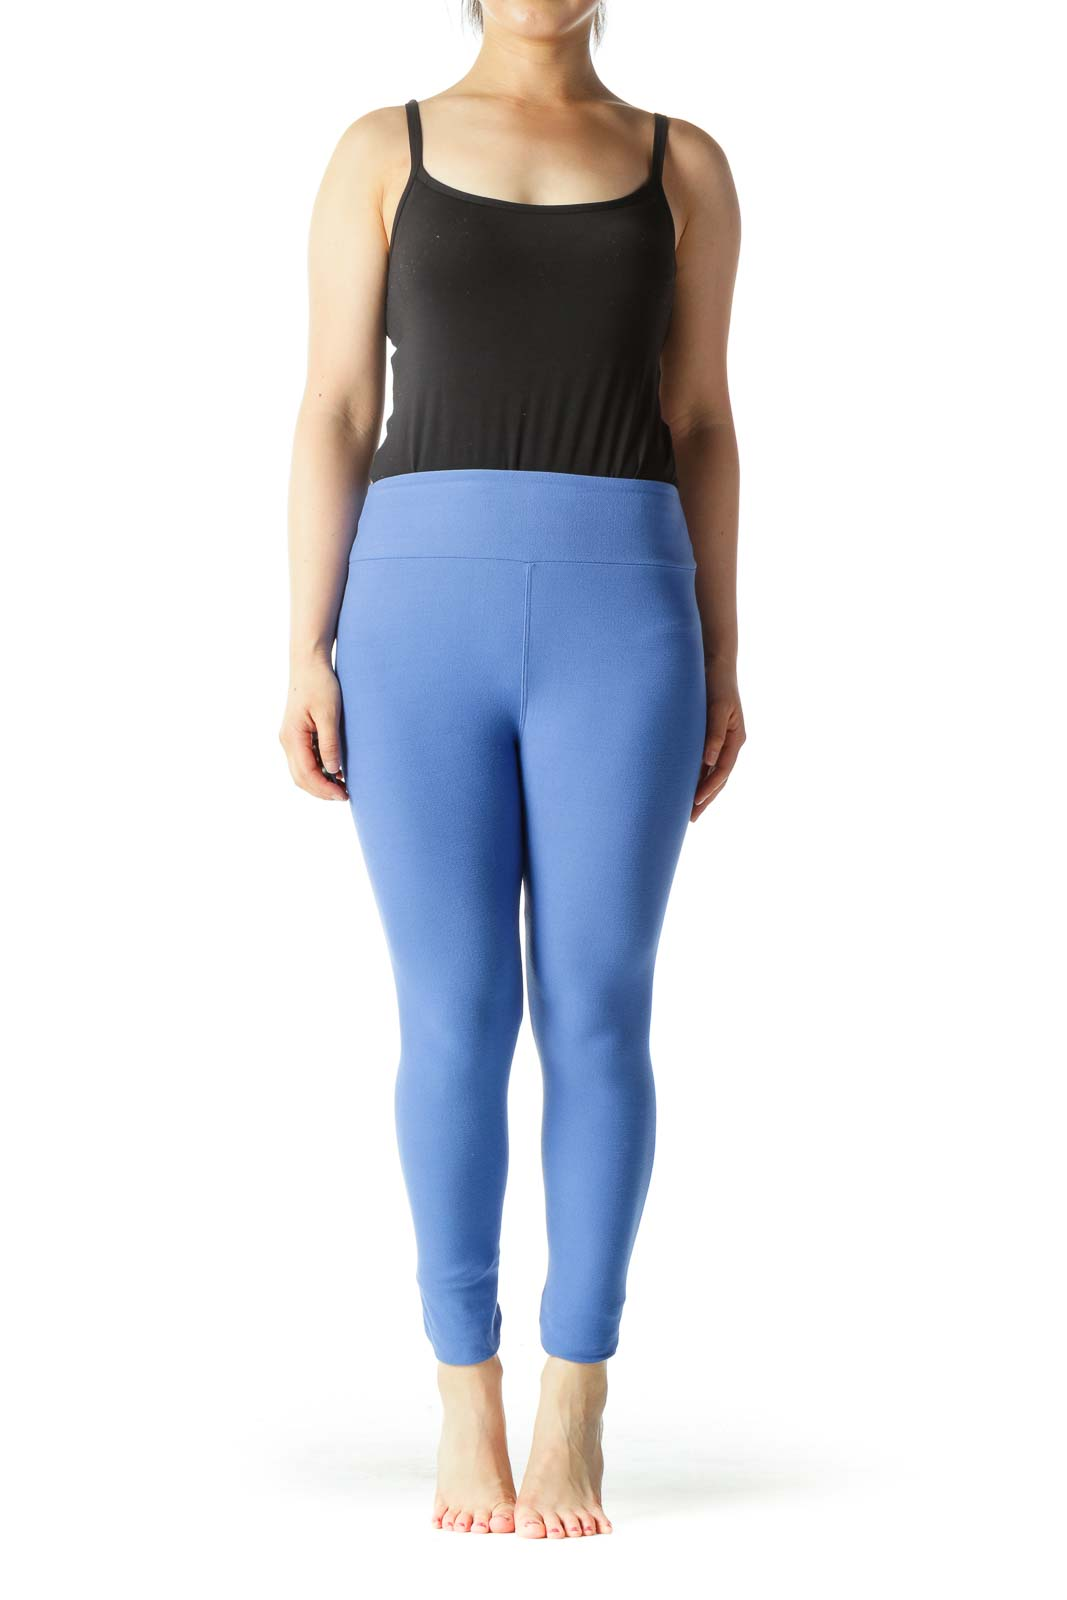 Blue One Size Leggings